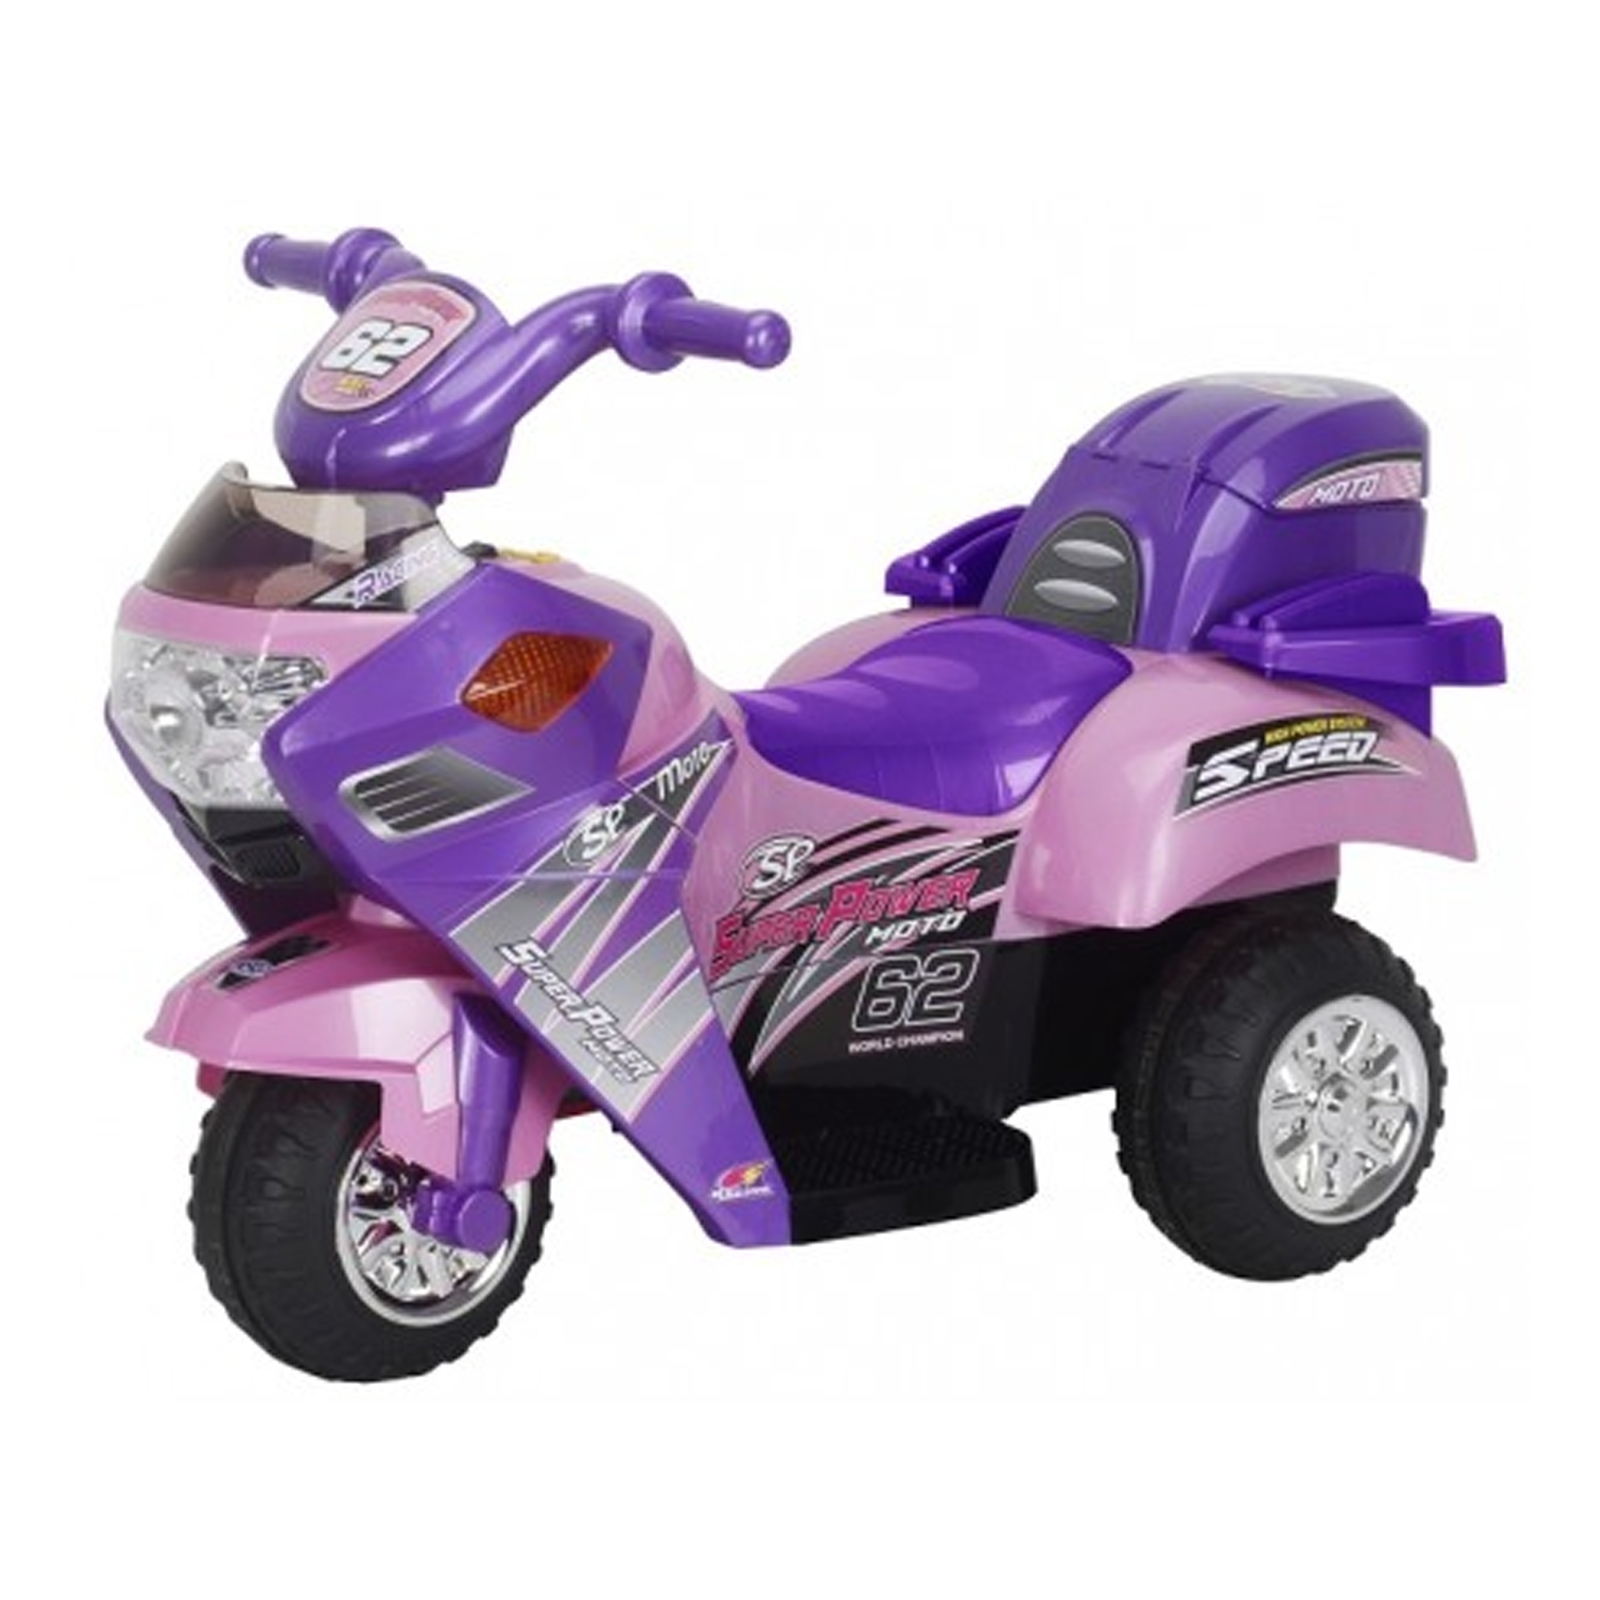 Little 3 Wheeler Pink Kids Ride On 6V Battery Powered Mini Motorcycle by KidFun Products